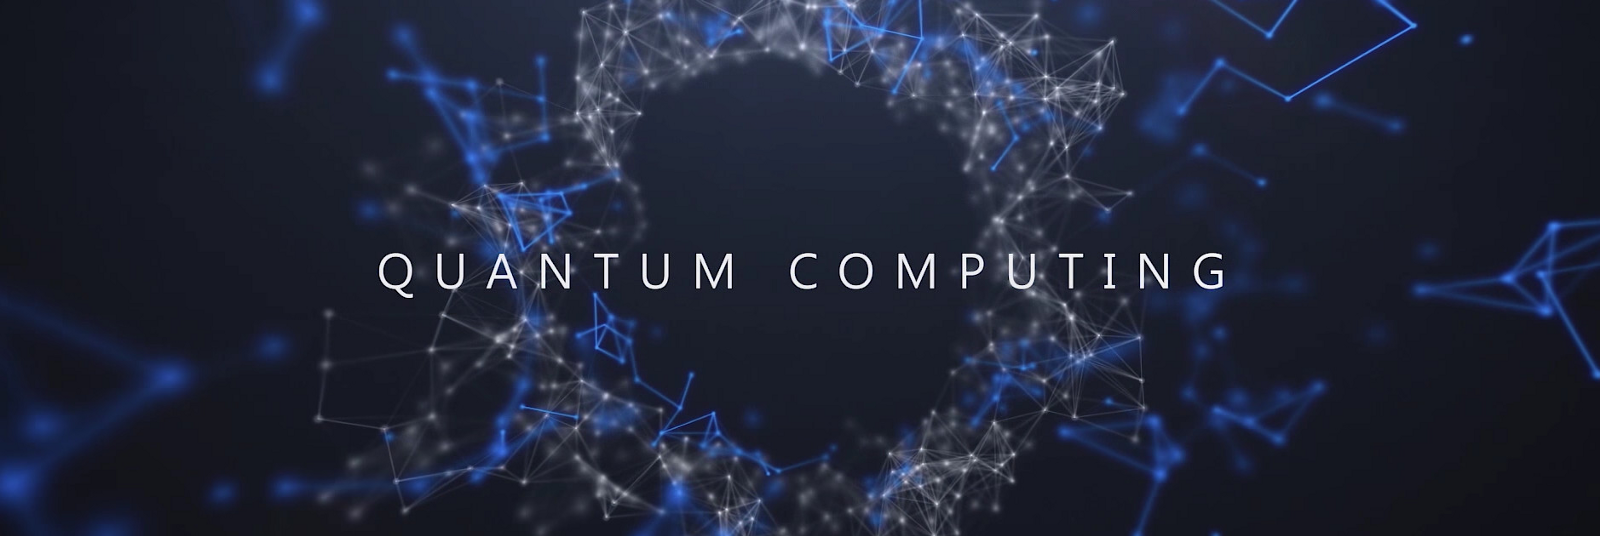 Best Quantum Computing Books 2020 | Learn Quantum Computing